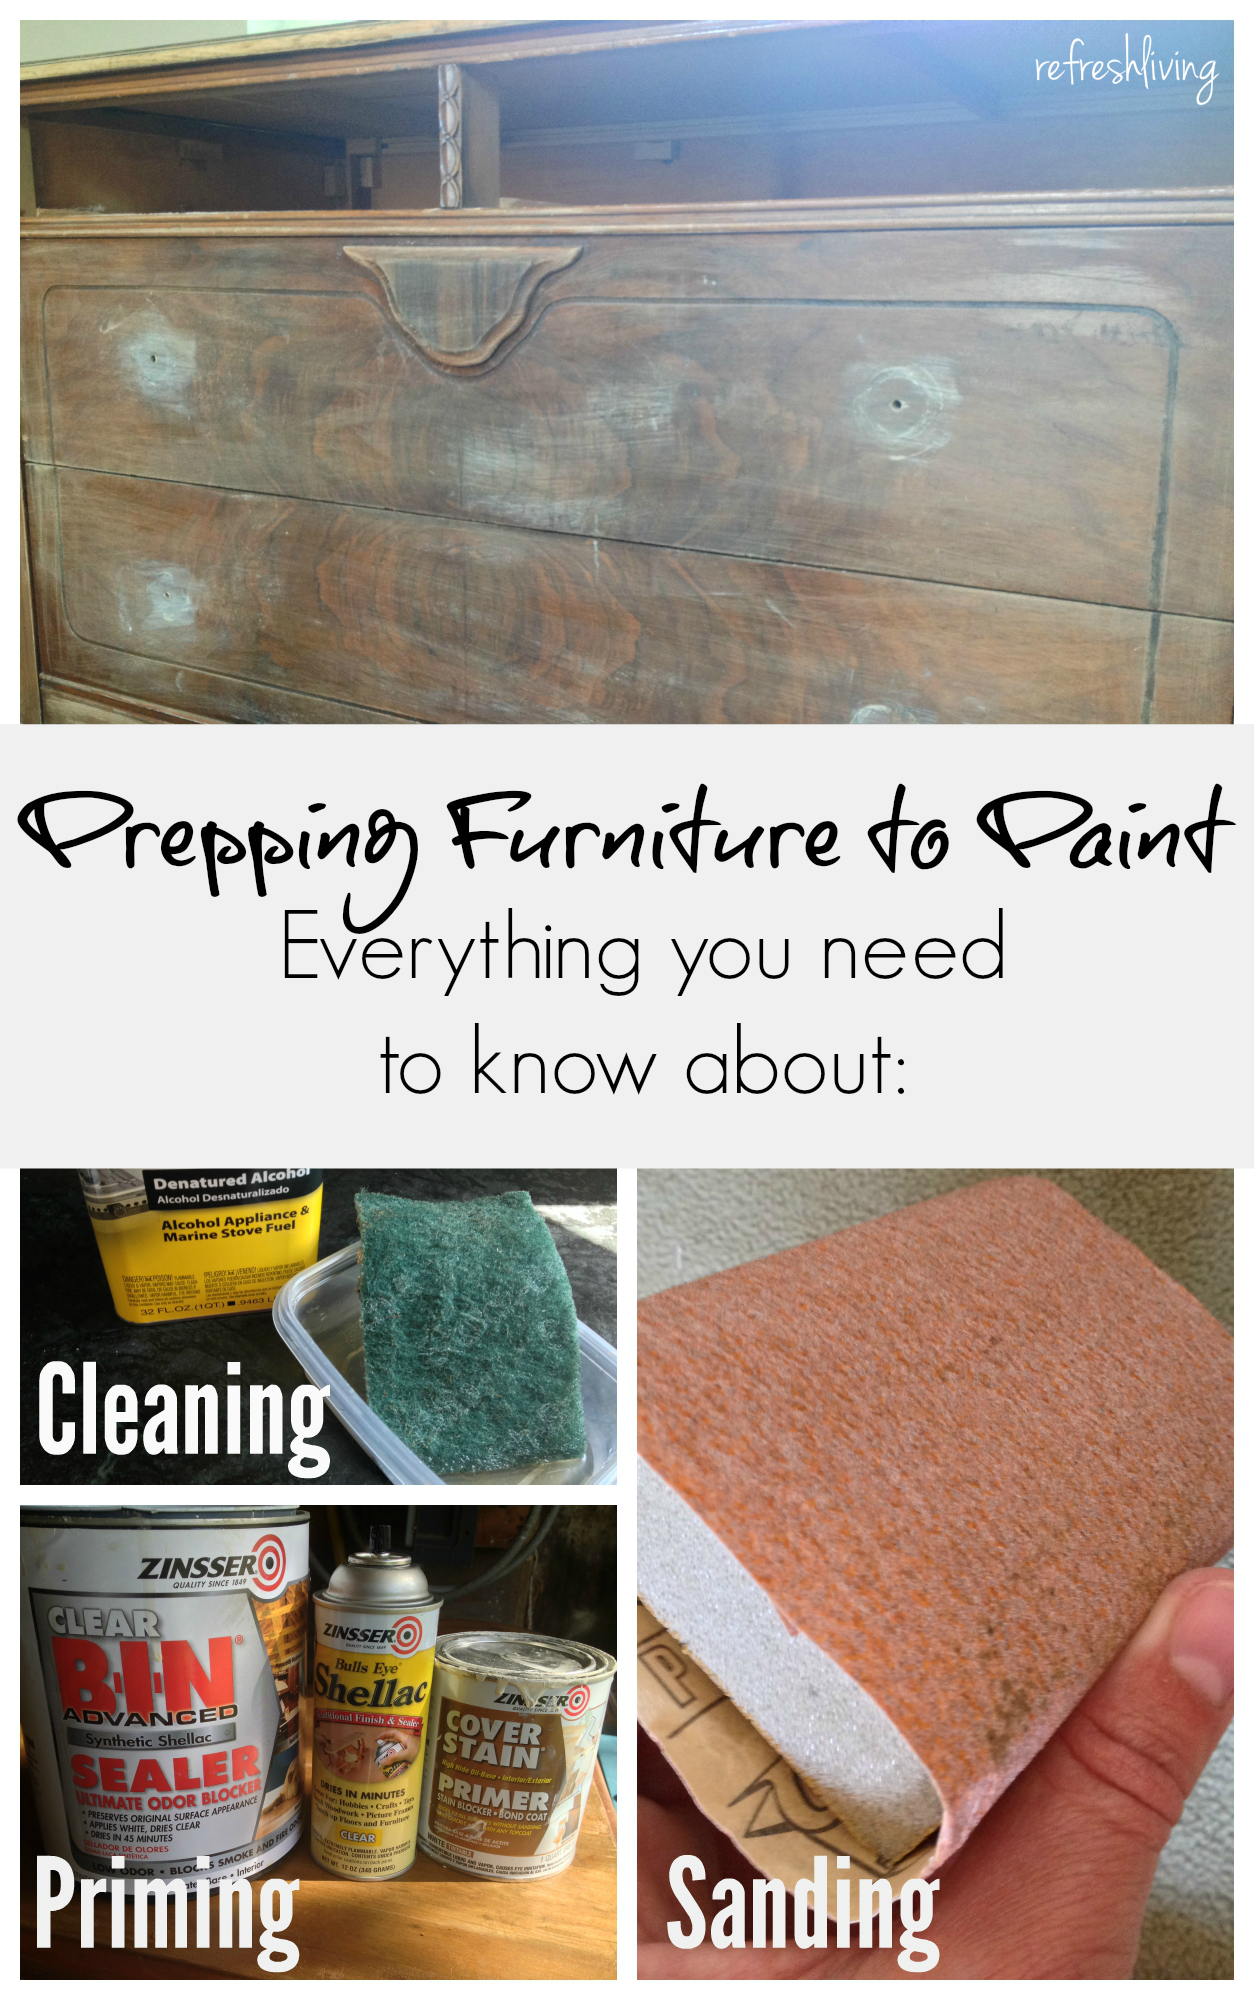 Tips For Preparing Furniture To Paint Refresh Living